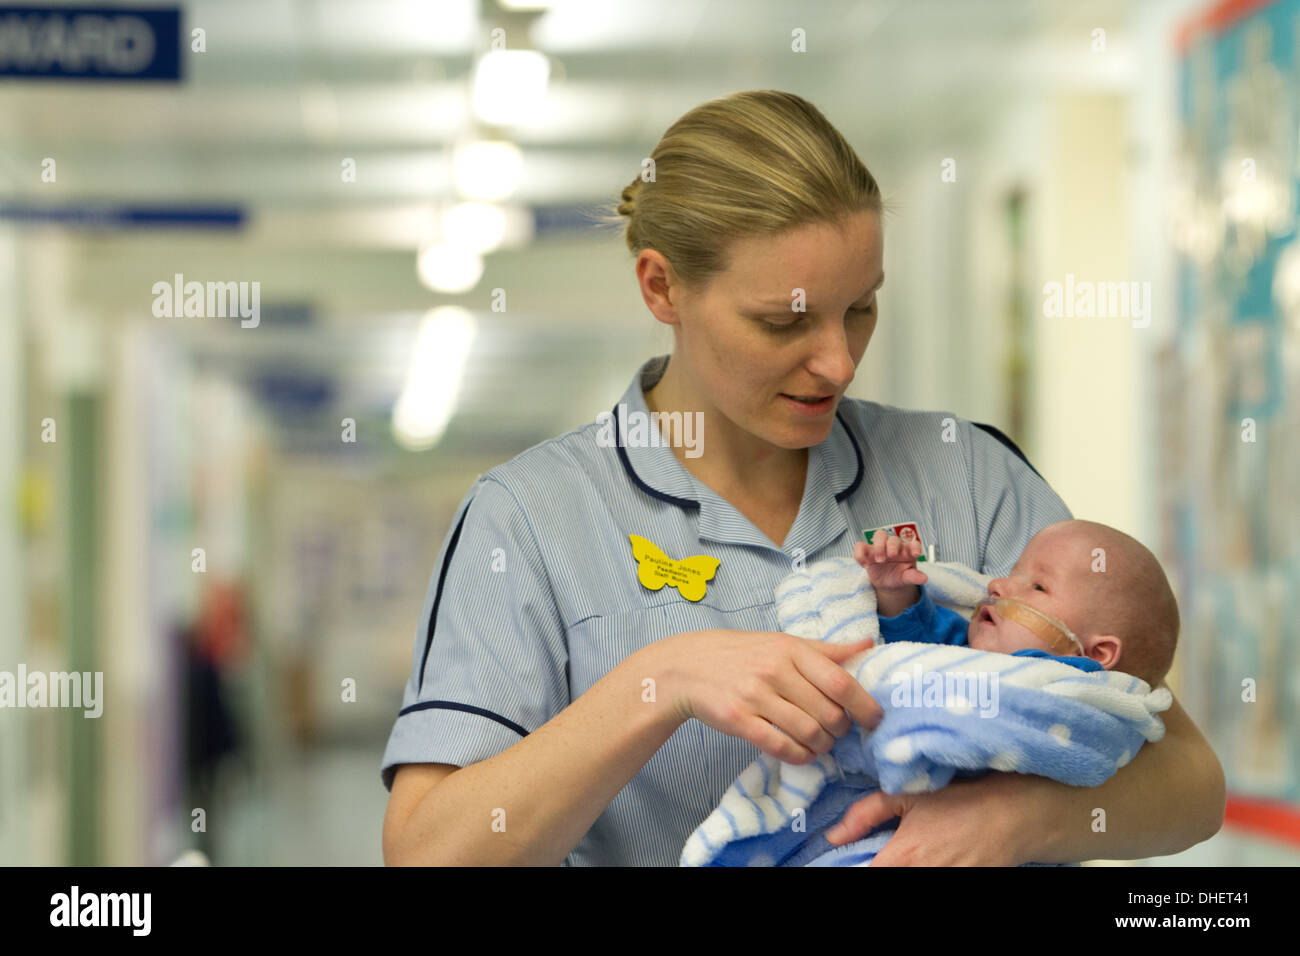 A pediatric nurse with a baby UK - Stock Image